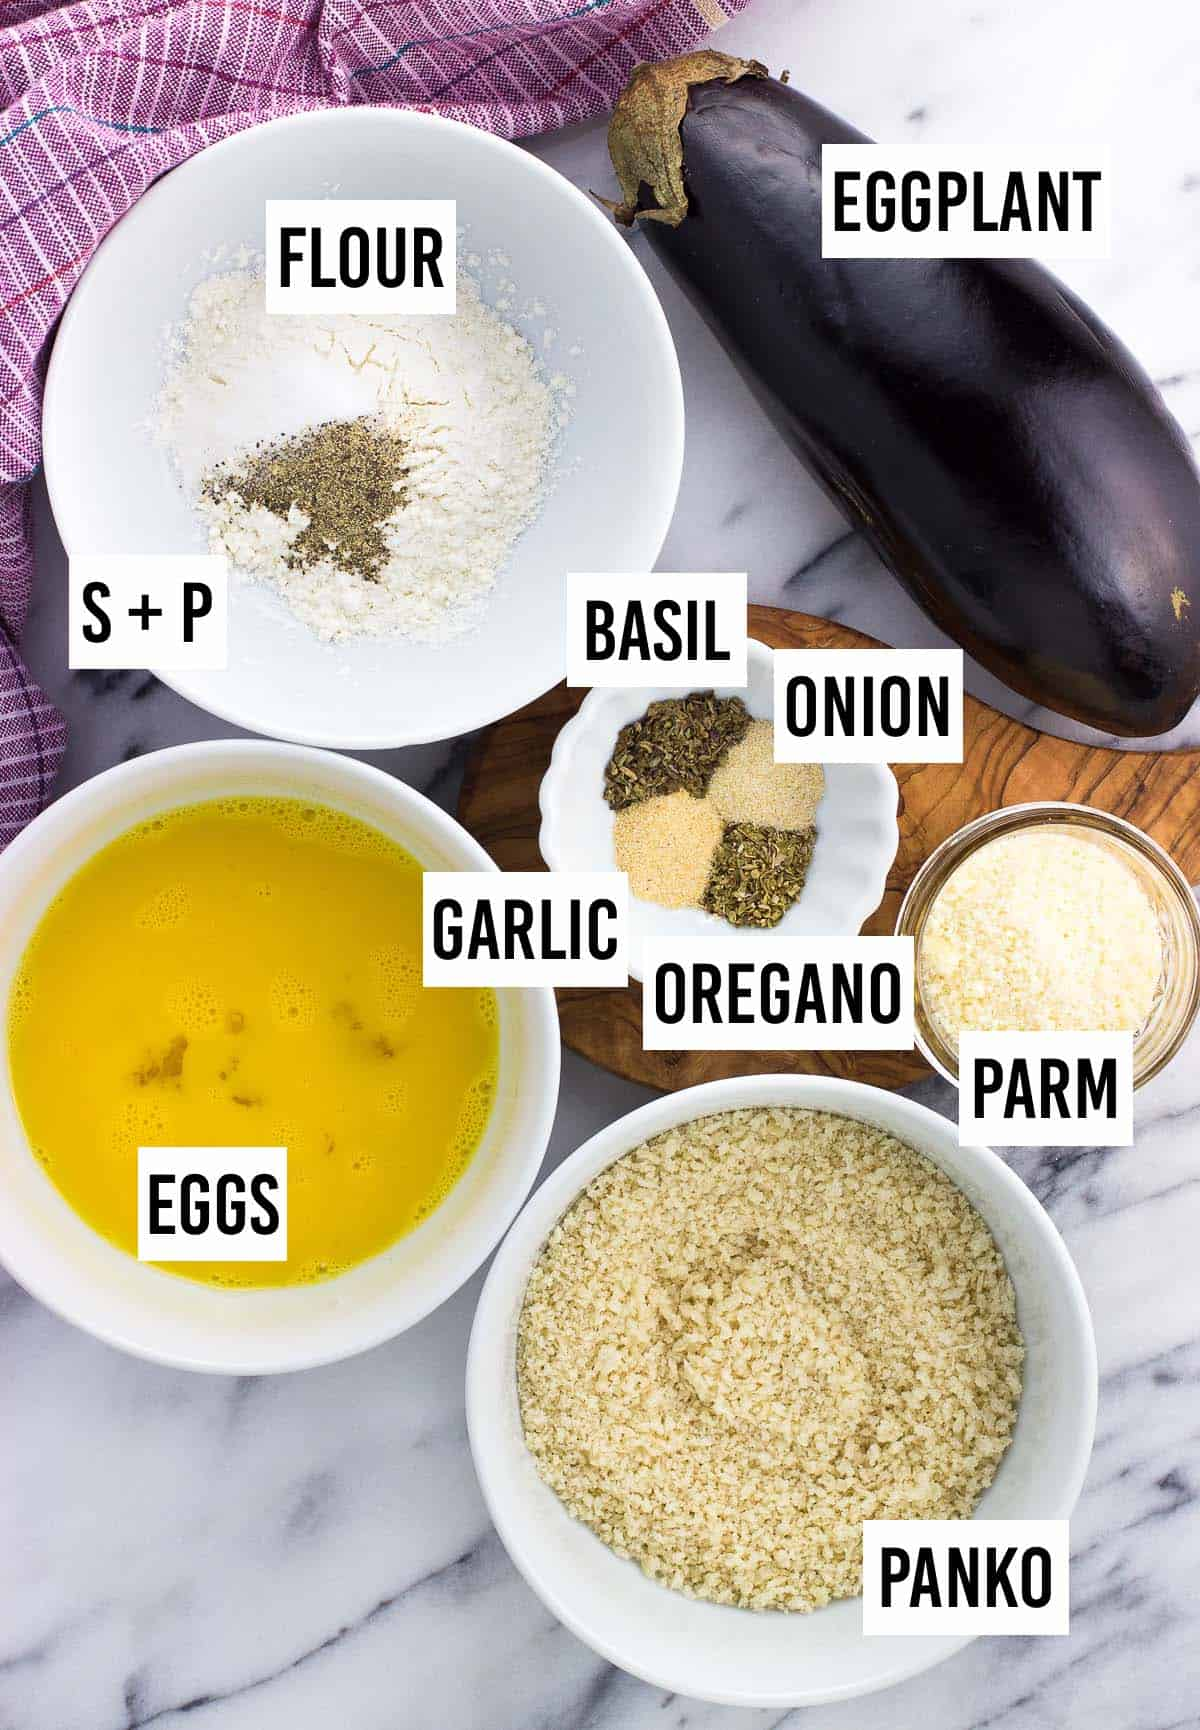 Recipe ingredients in separate bowls on a board.